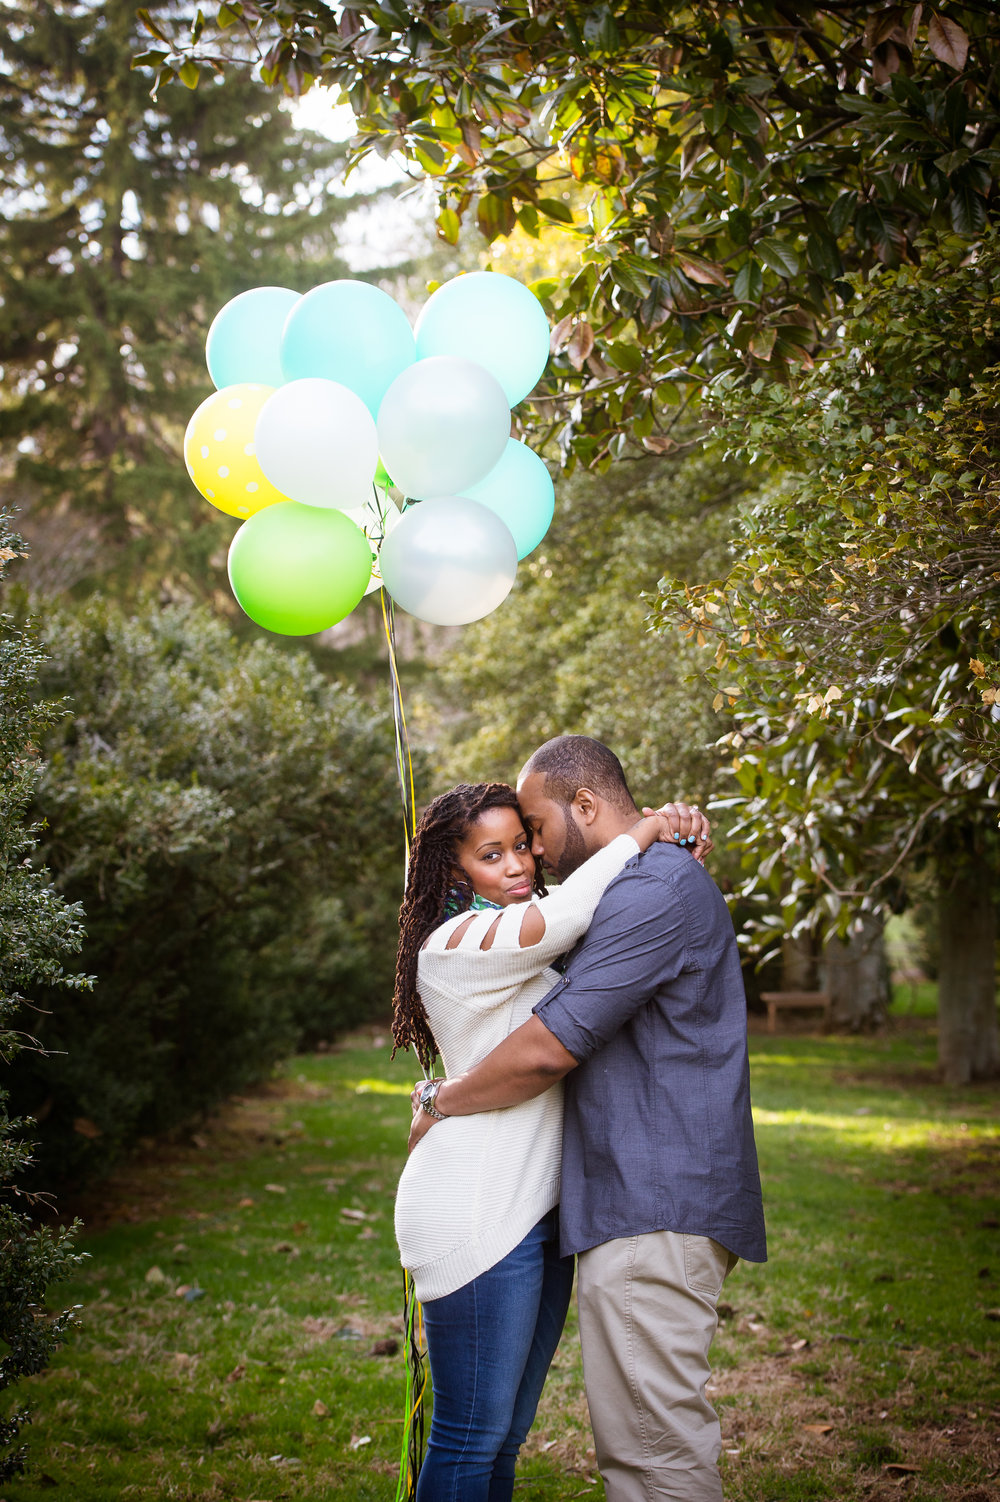 Lock and Co. Traci JD Medlock Washington DC Wedding Portrait Music Photography Videography Lifestyle Photographers Virginia Balloon.jpg